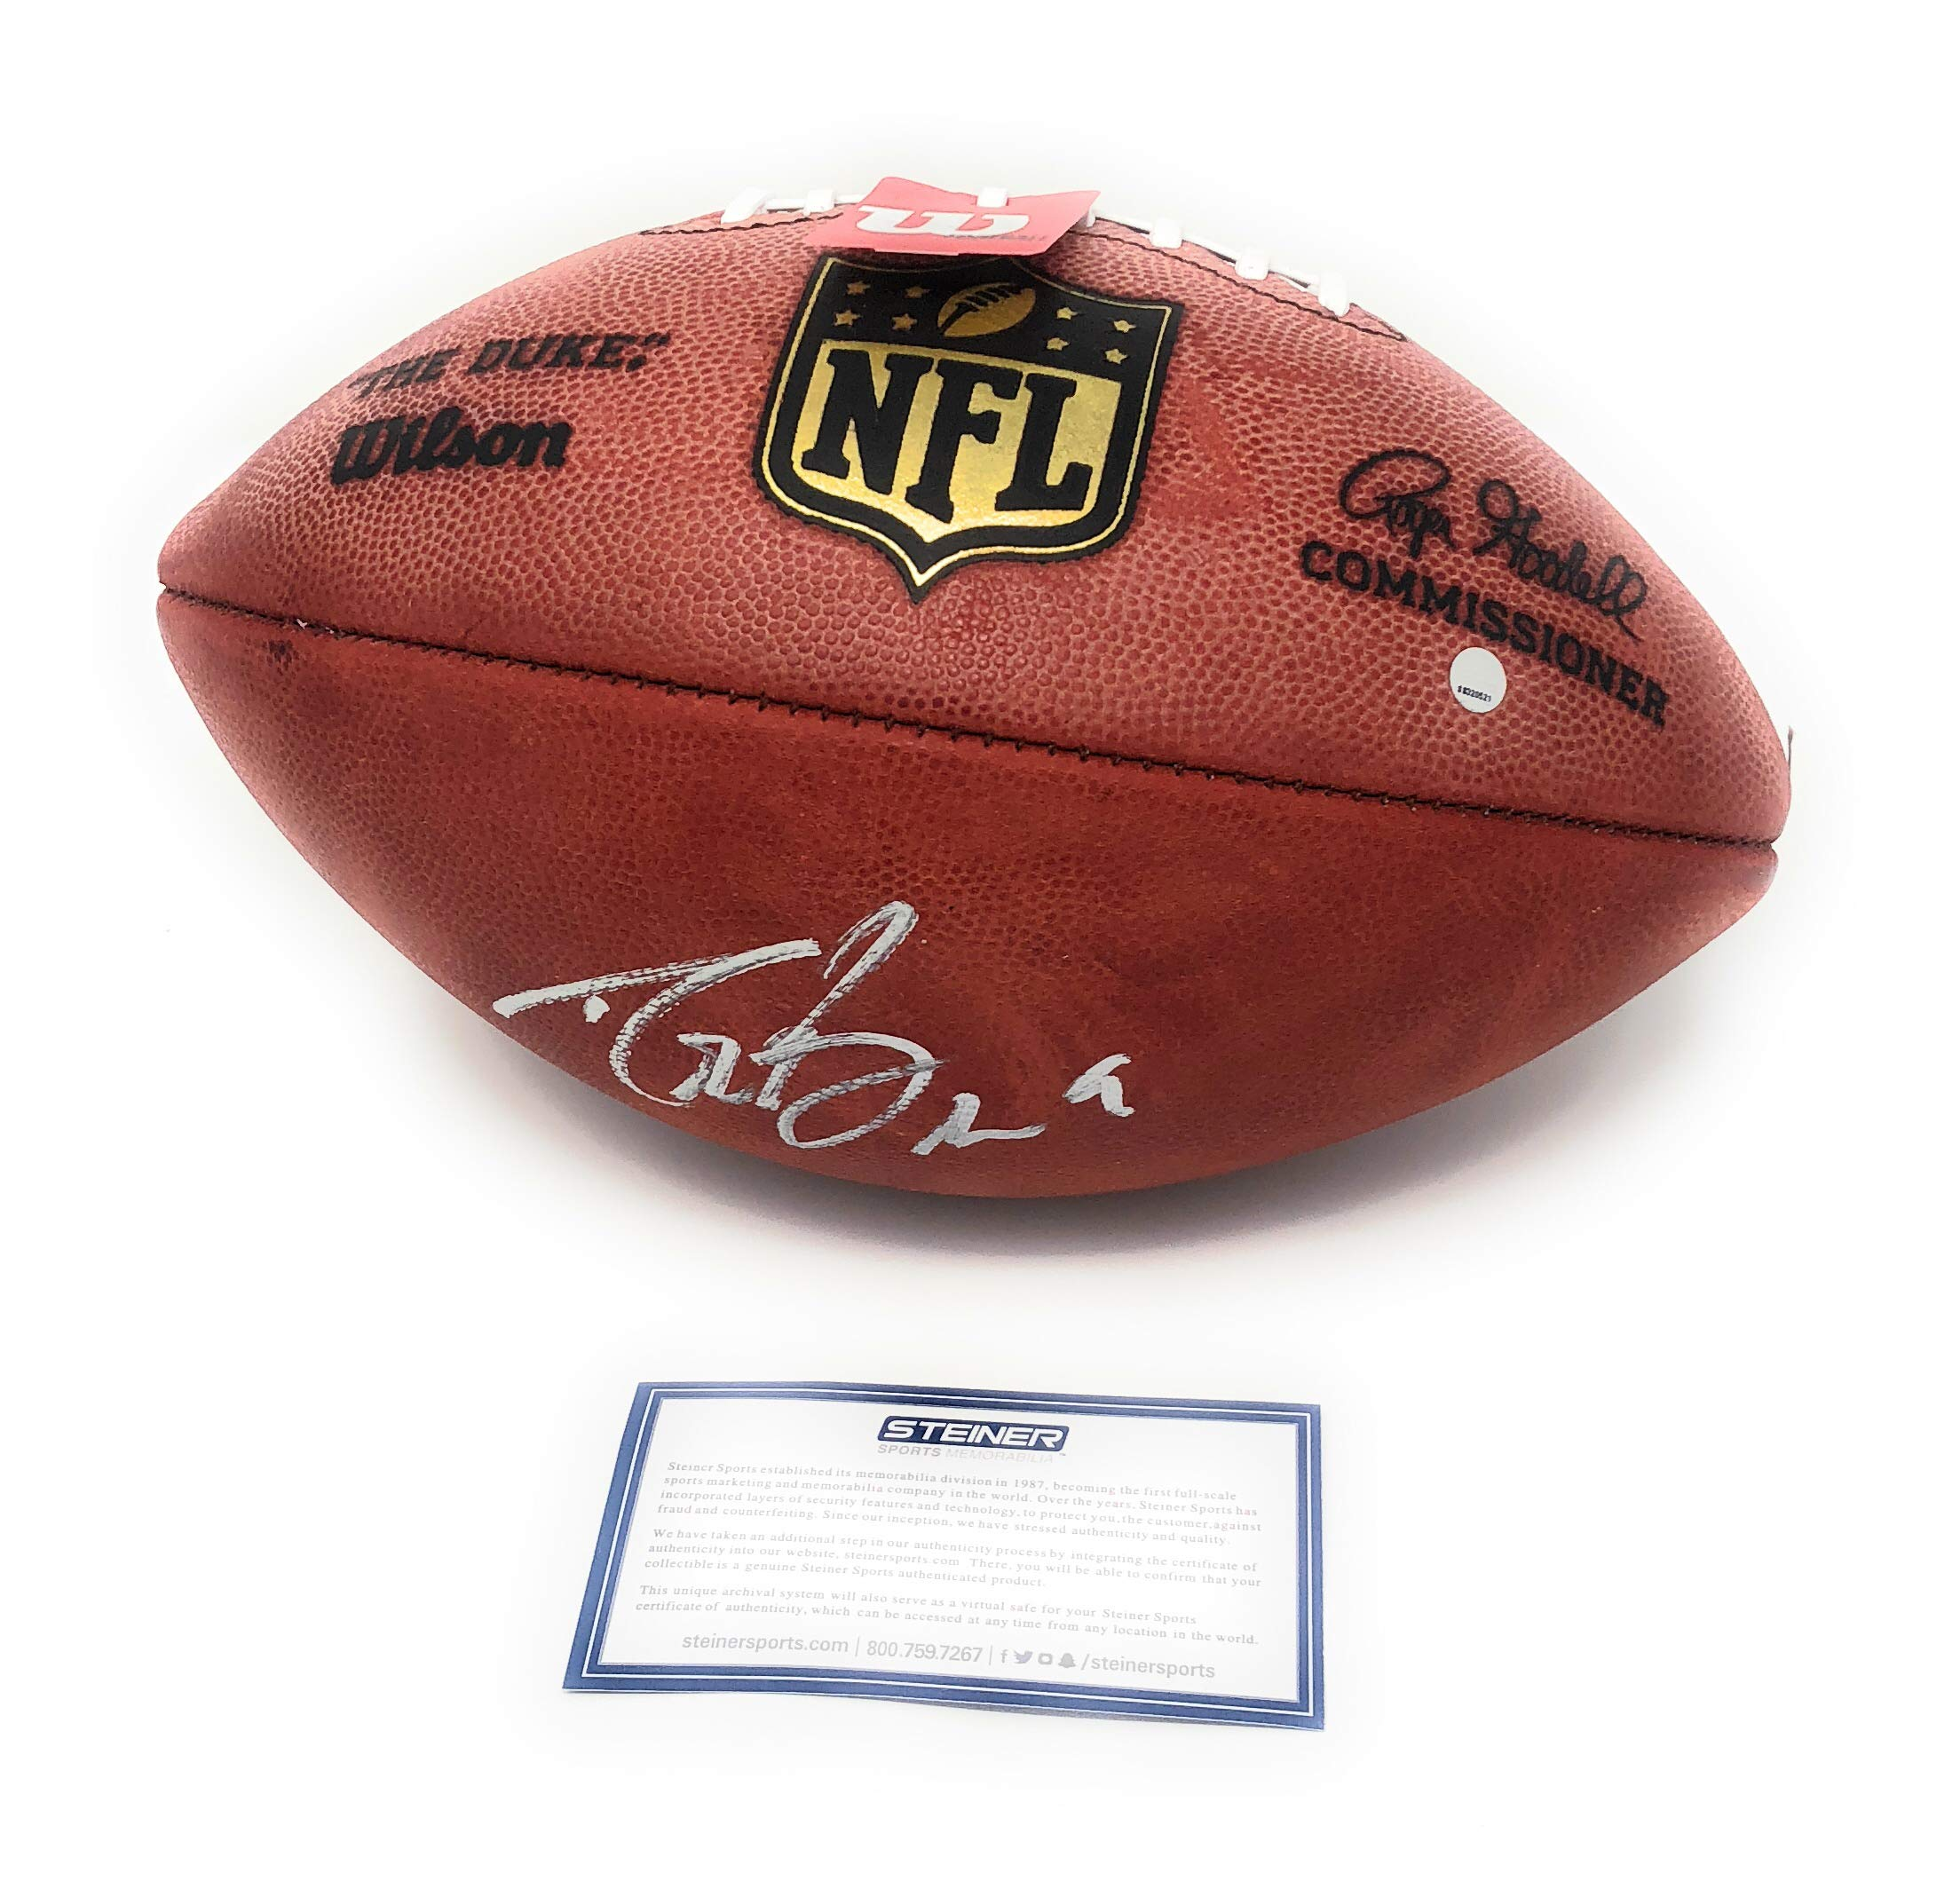 Drew Brees New Orleans Saints Signed Autograph Authentic NFL Duke Football Steiner Sports Certified